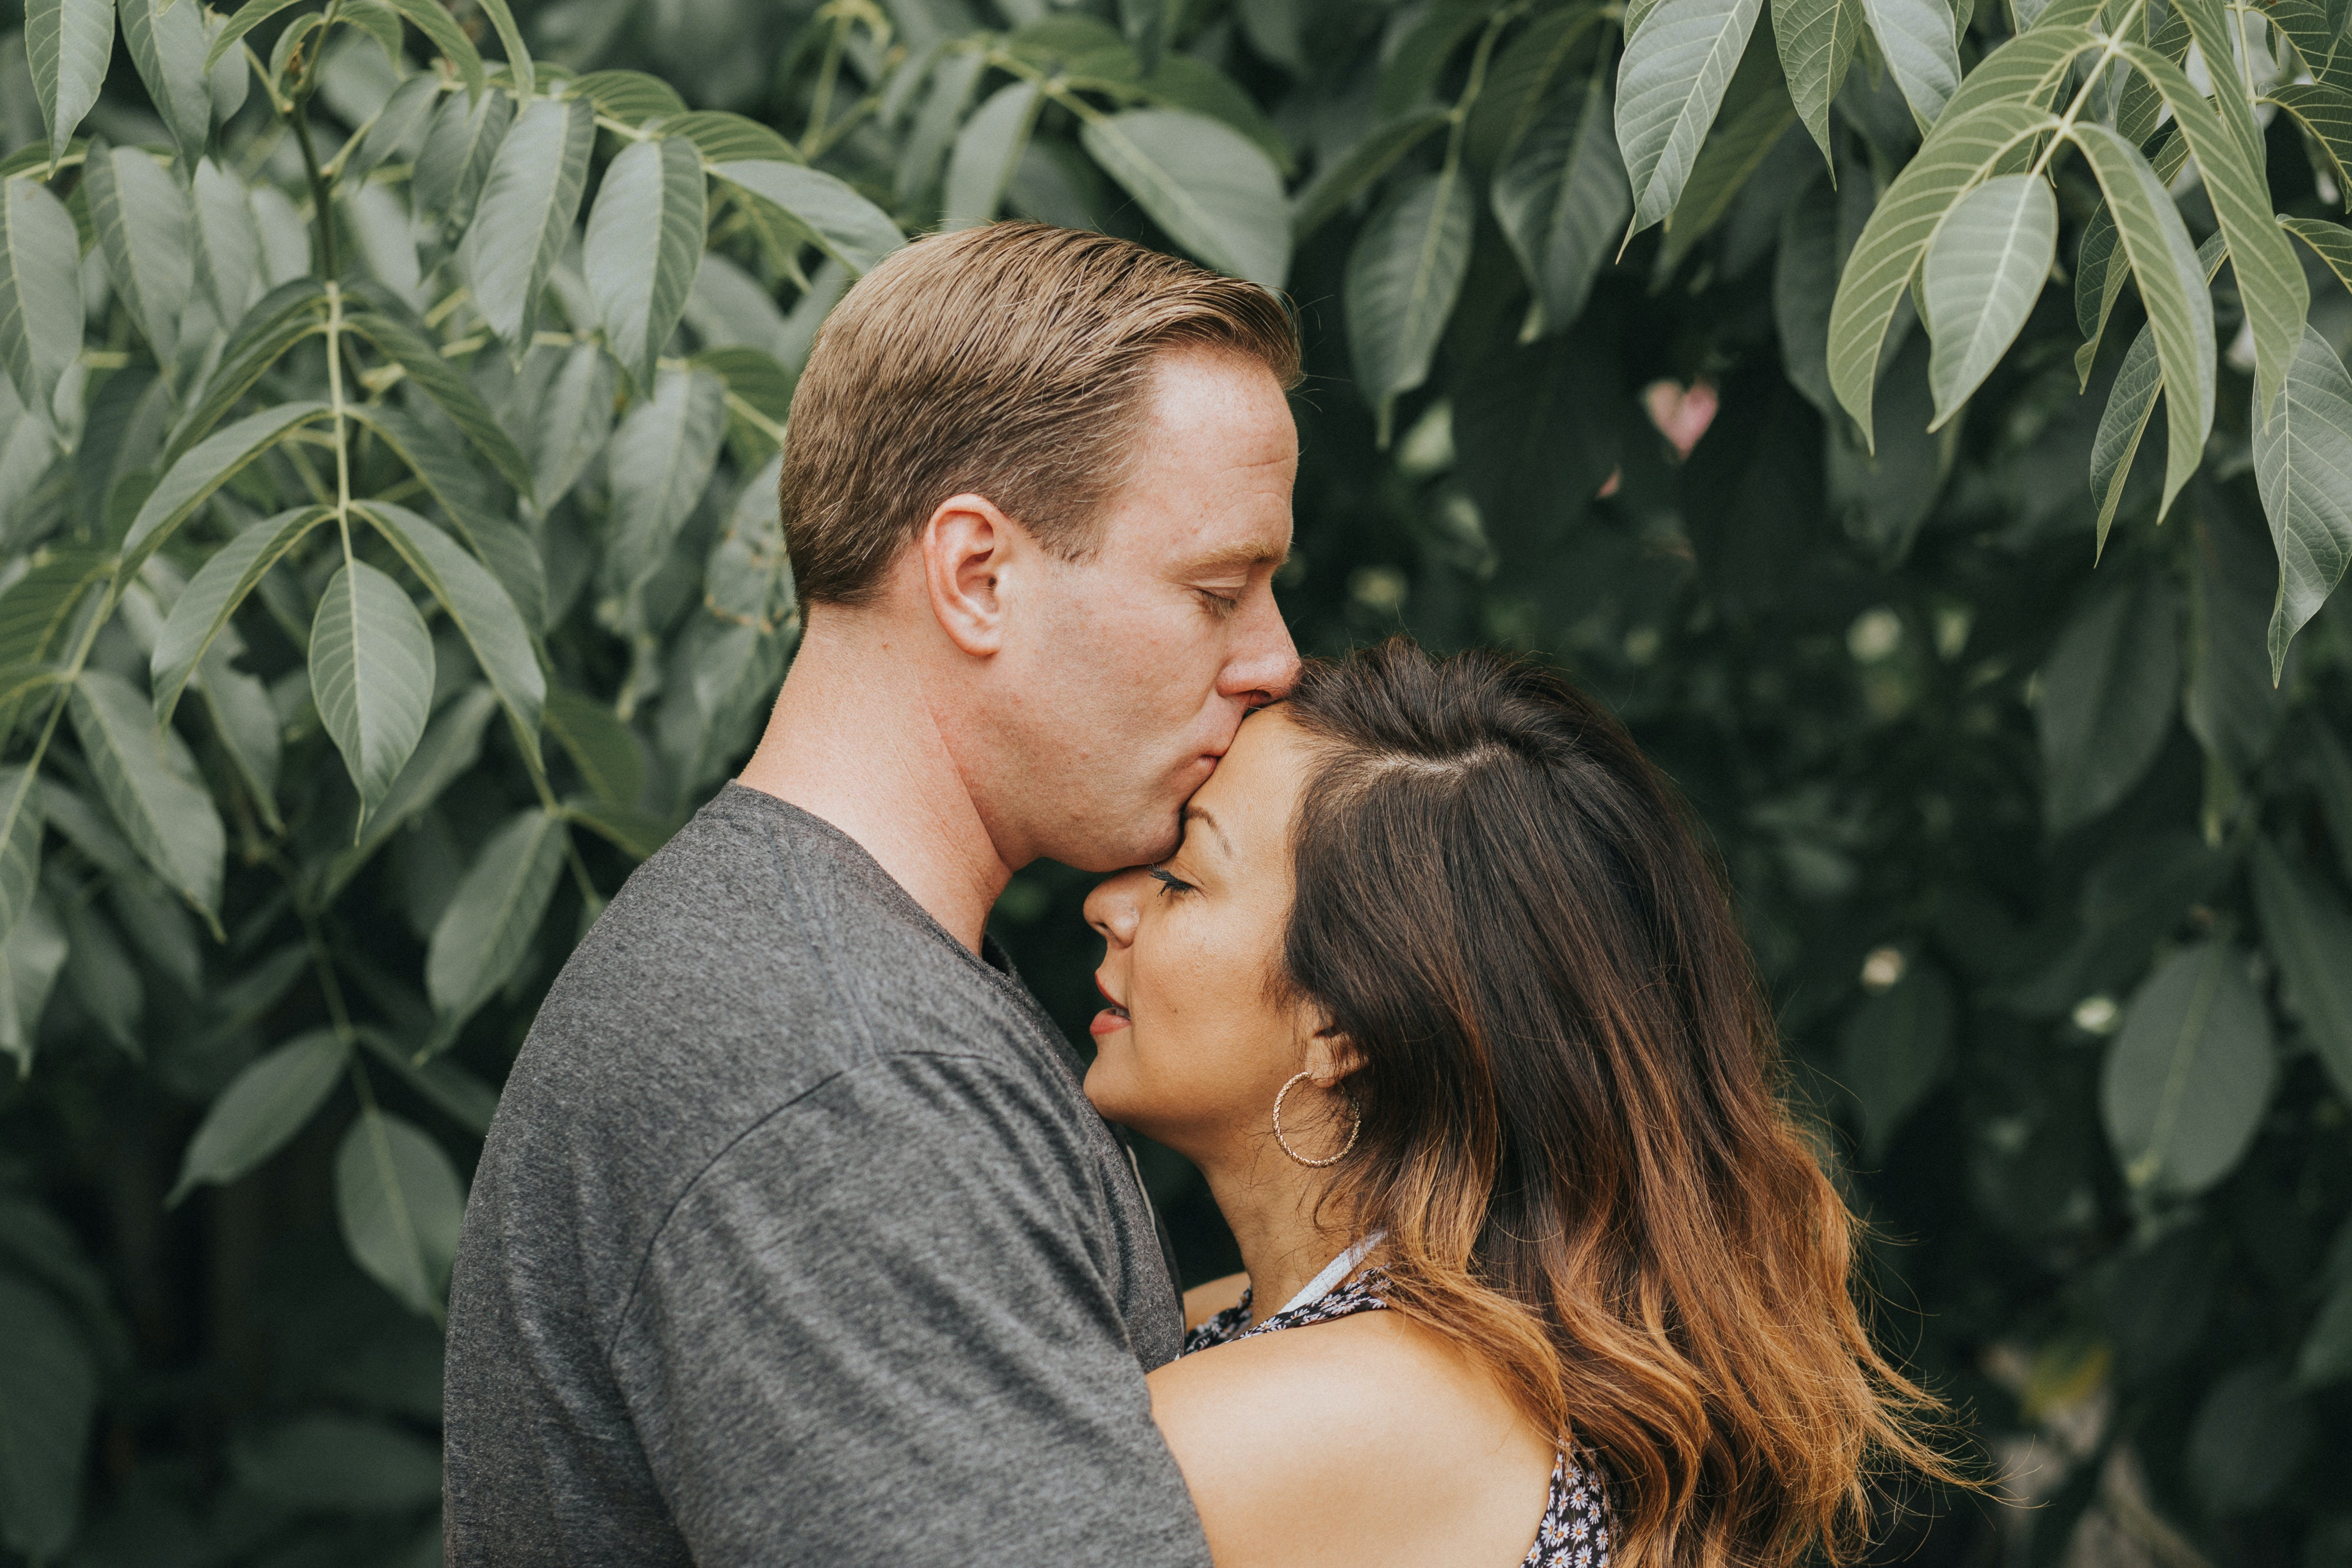 Couple in love hugging and kissing each other on the forehead